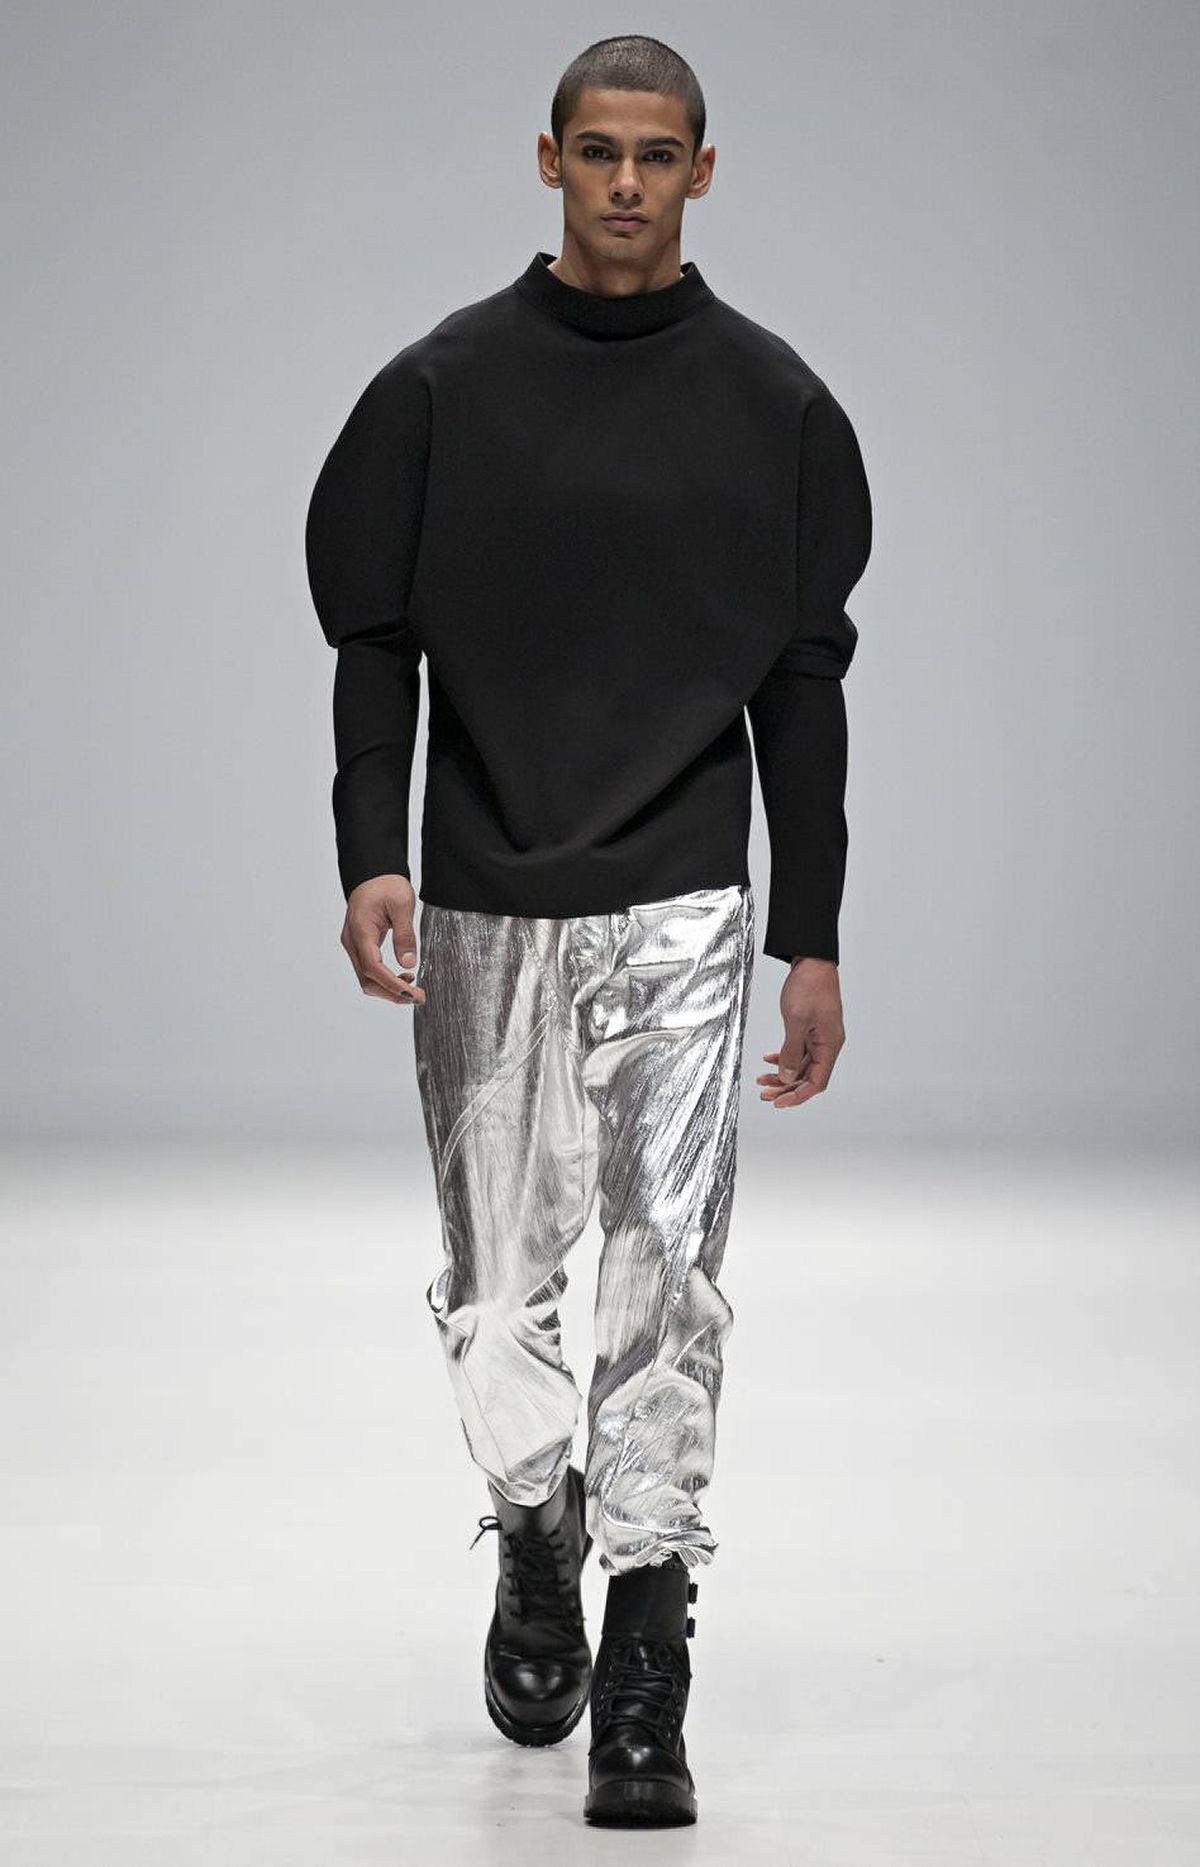 Another piece borrowed from the girls was a rounded shoulder top that was paired with slouchy silver pants. The looks were assertive, pitting tough fabrics with soft lines.